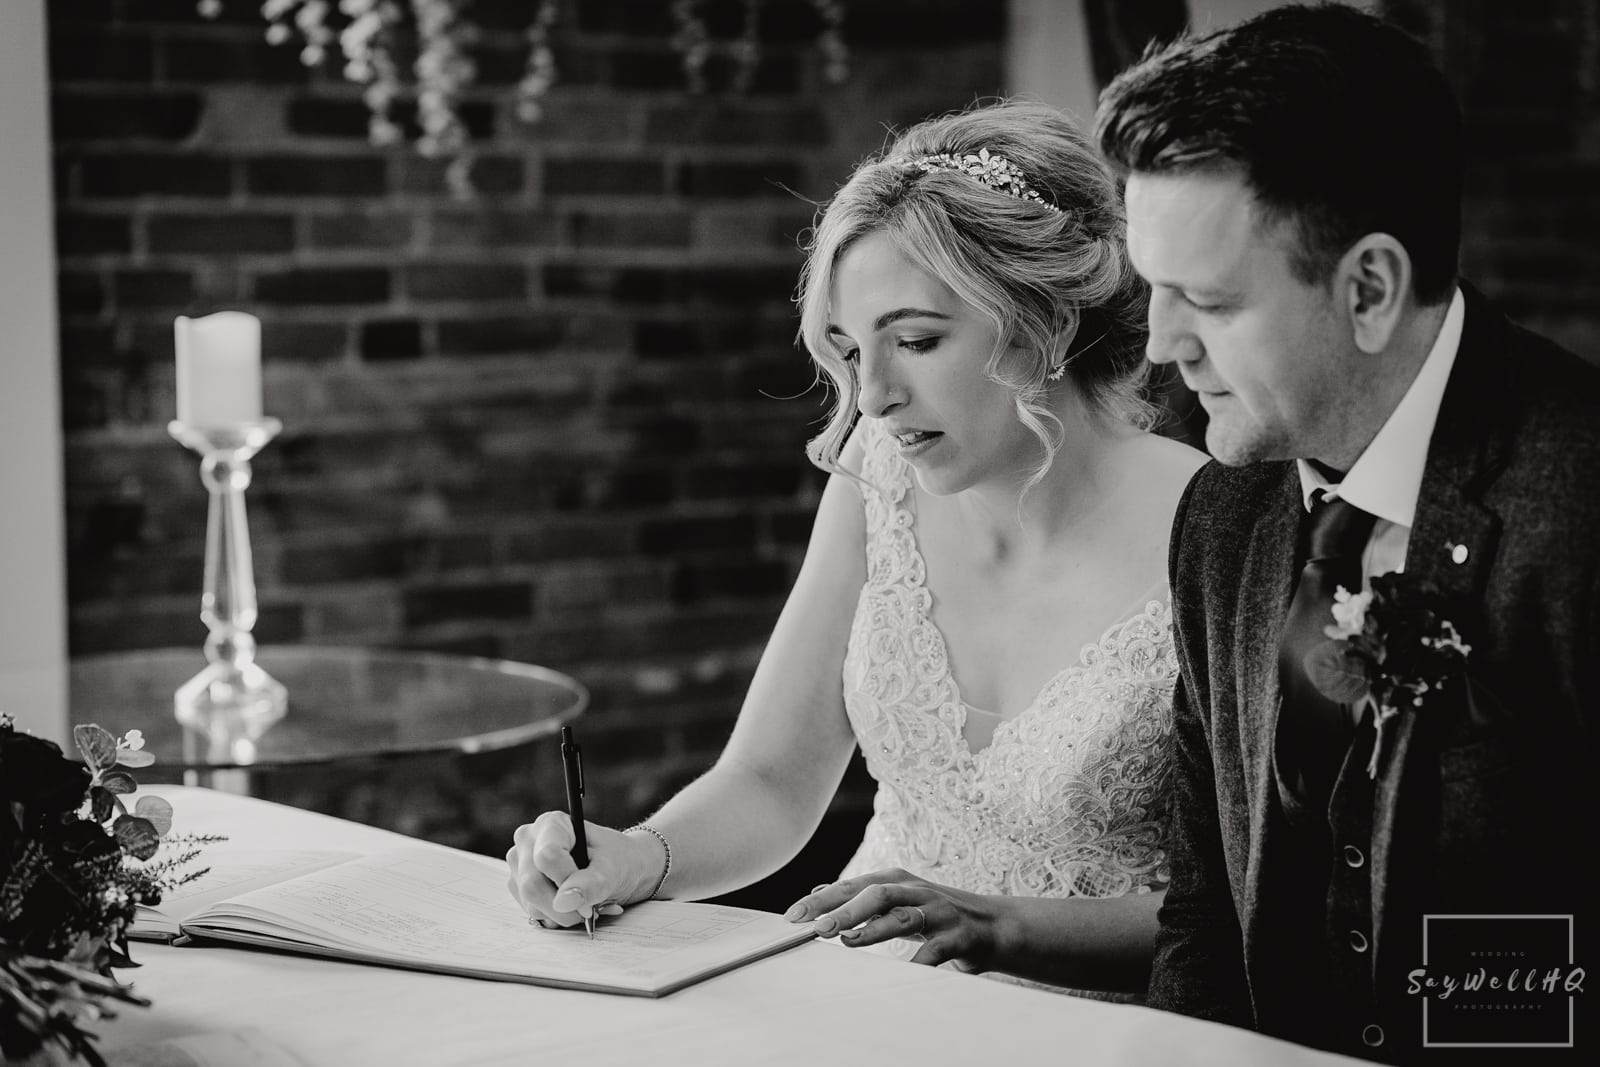 Goosedale Wedding Photography + Goosedale Wedding Photographer + Bride signs the wedding register at a wedding at Goosedale in Nottingham